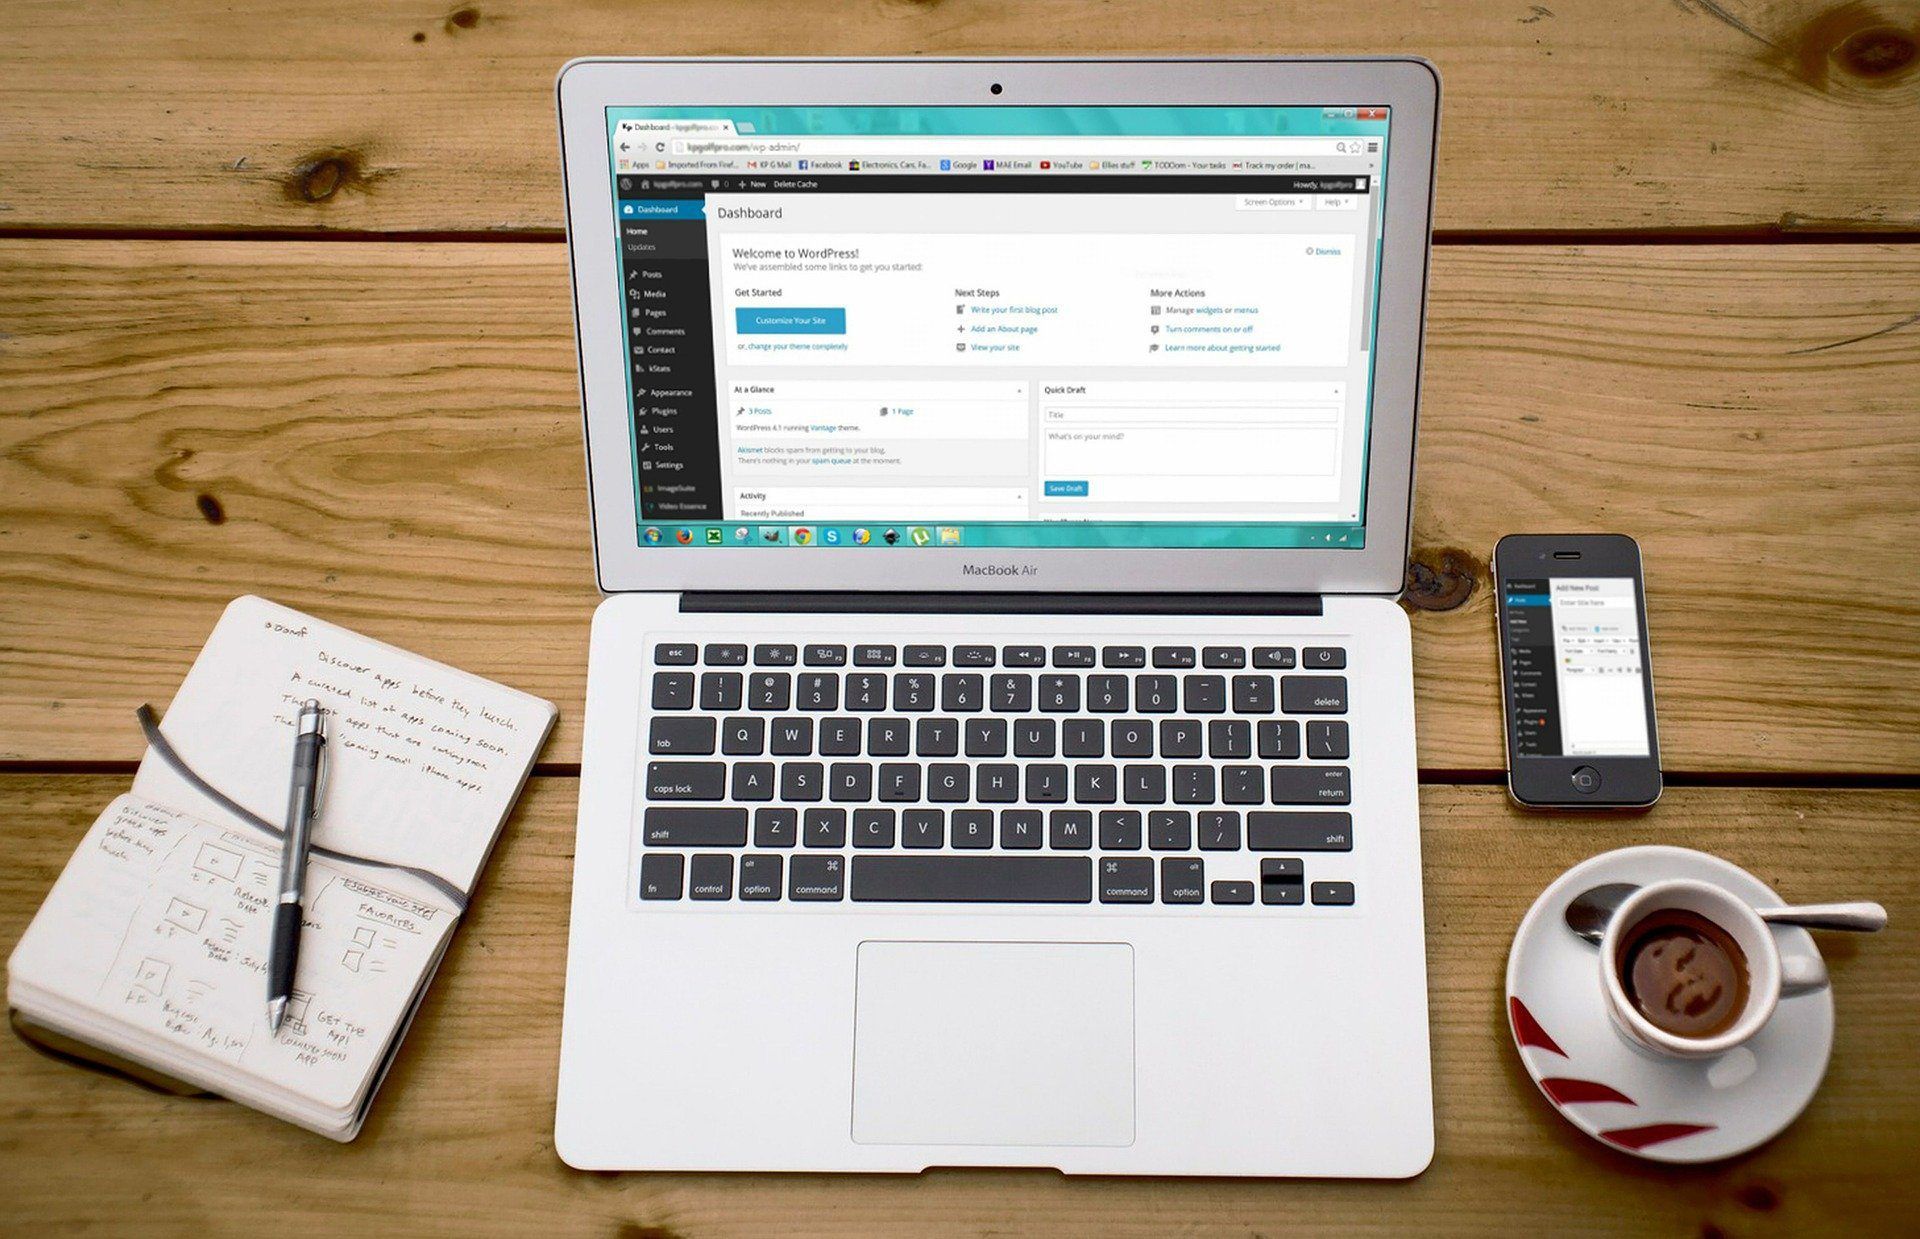 A laptop with WordPress open and ready for adding website content.